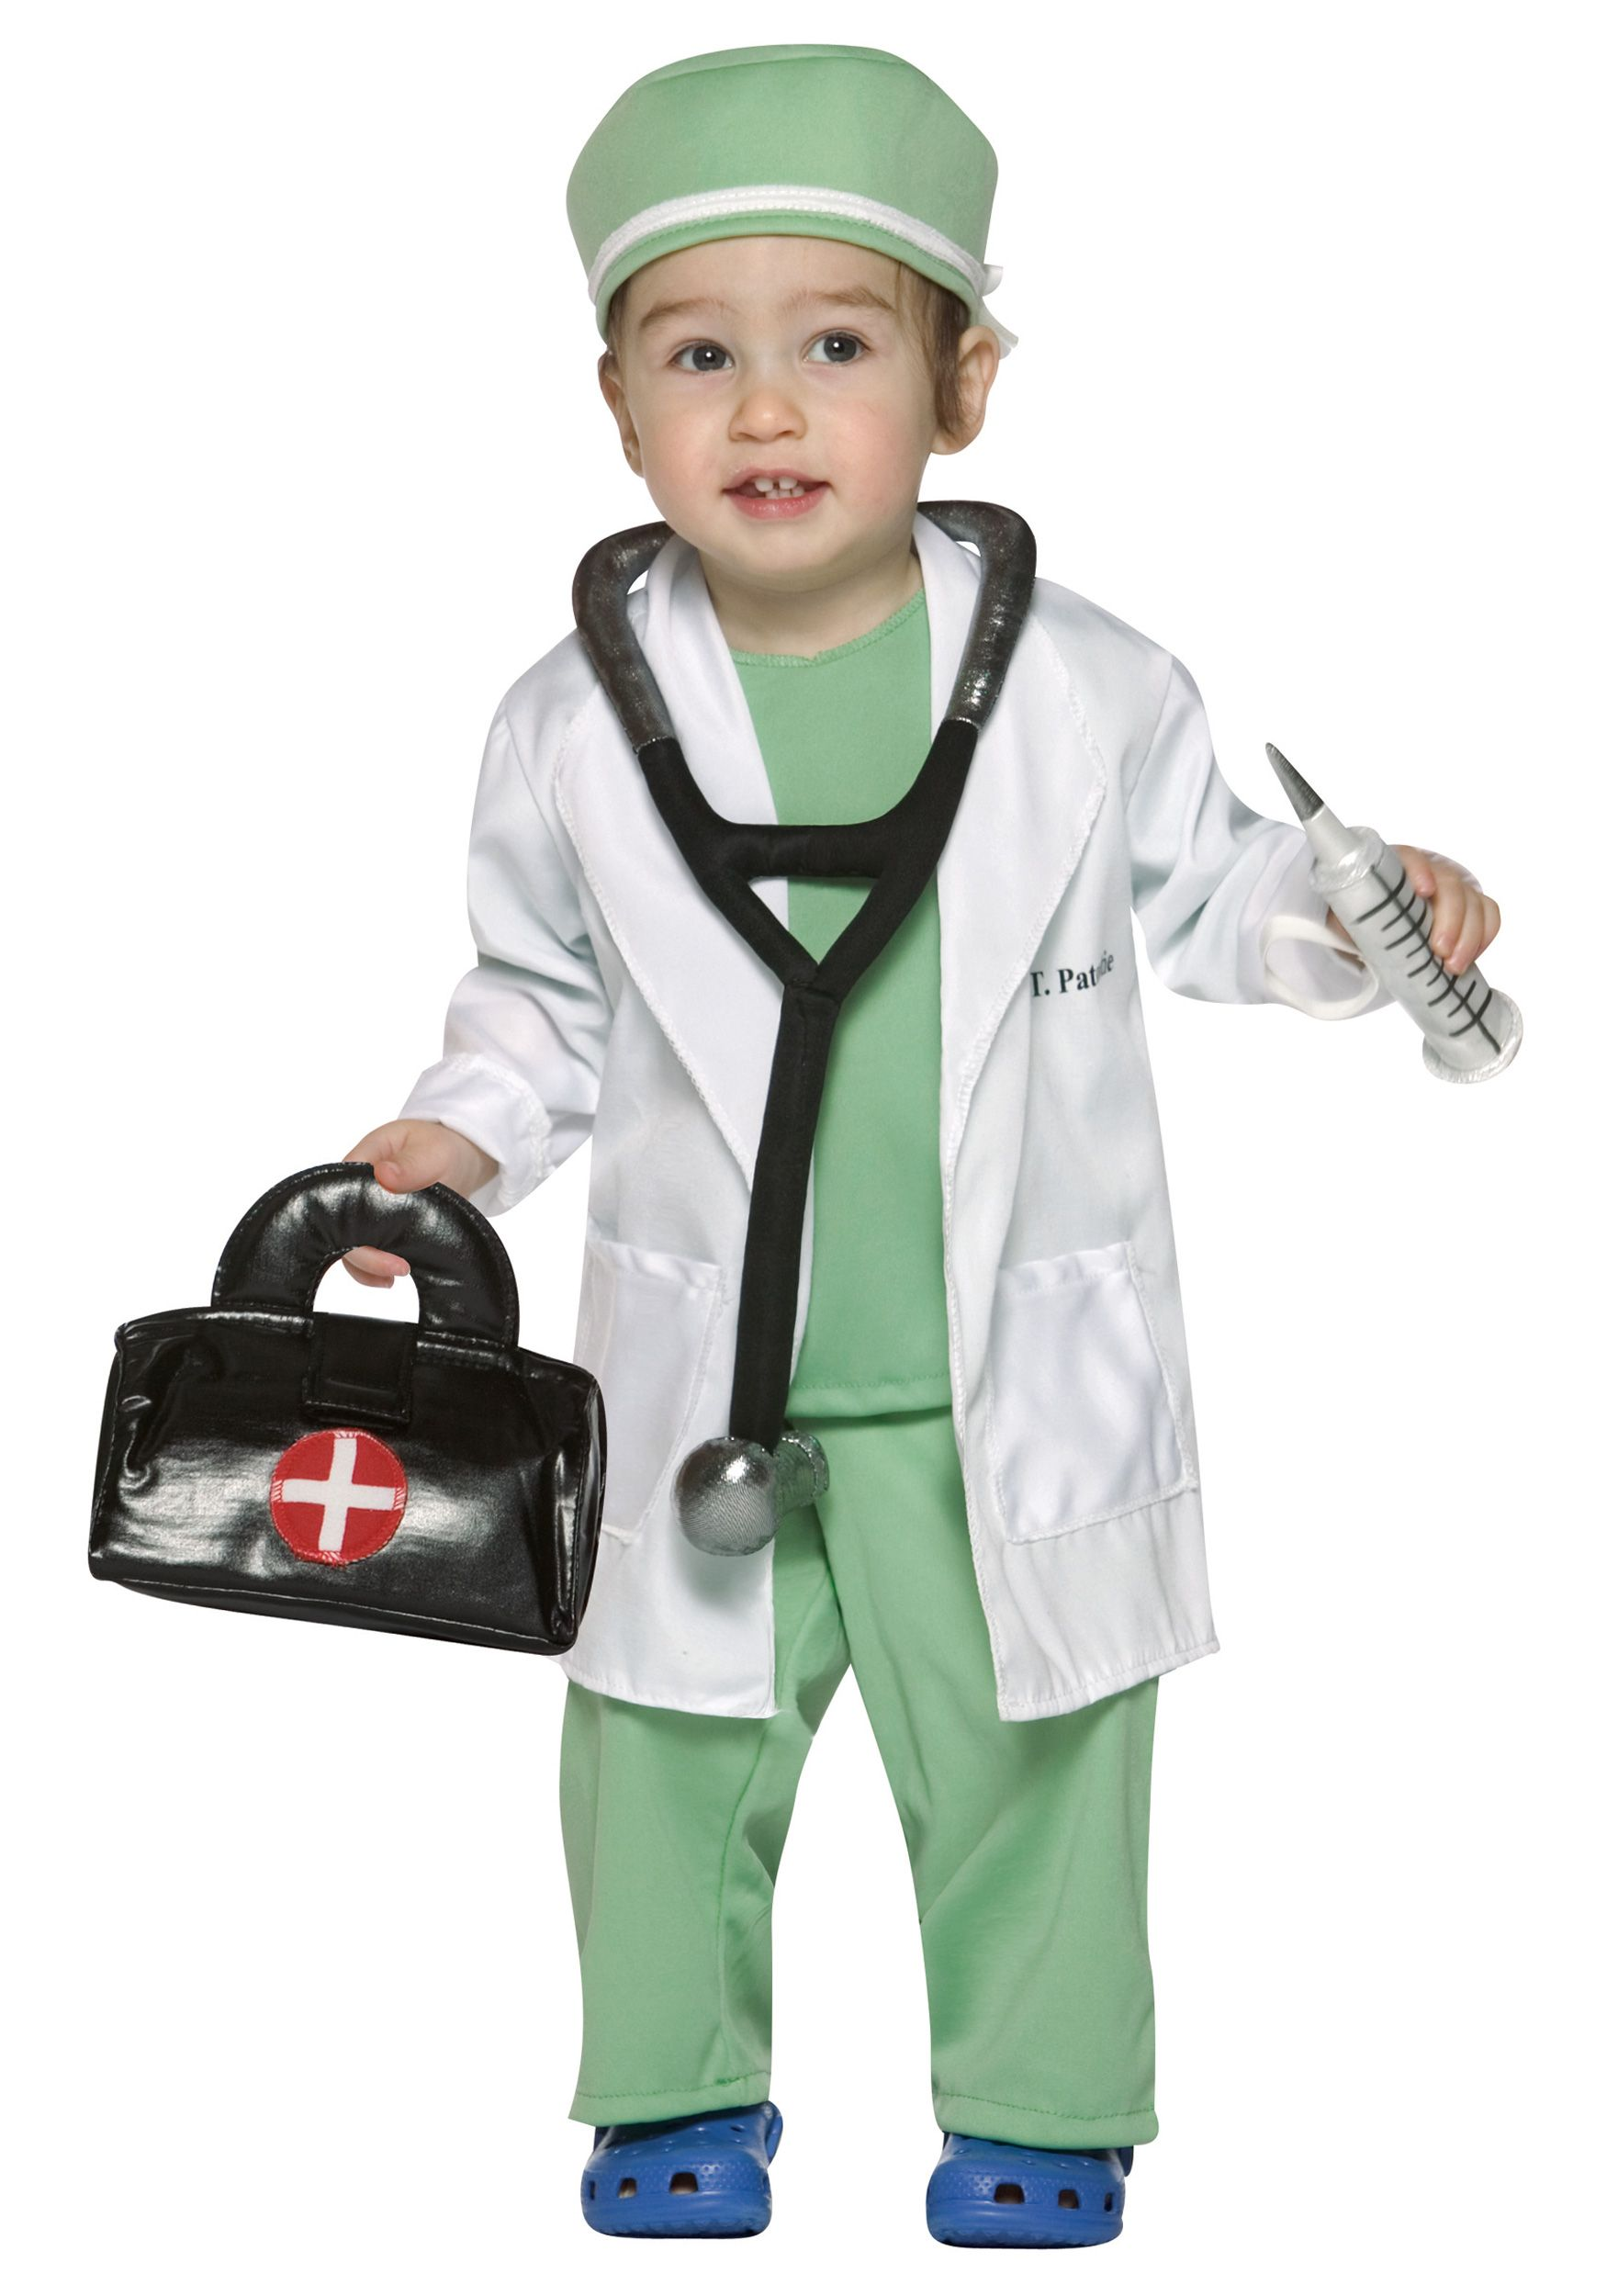 Child Doctor Costume Boys ER Hospital Surgeon Fancy Dress Scrubs Outfit New